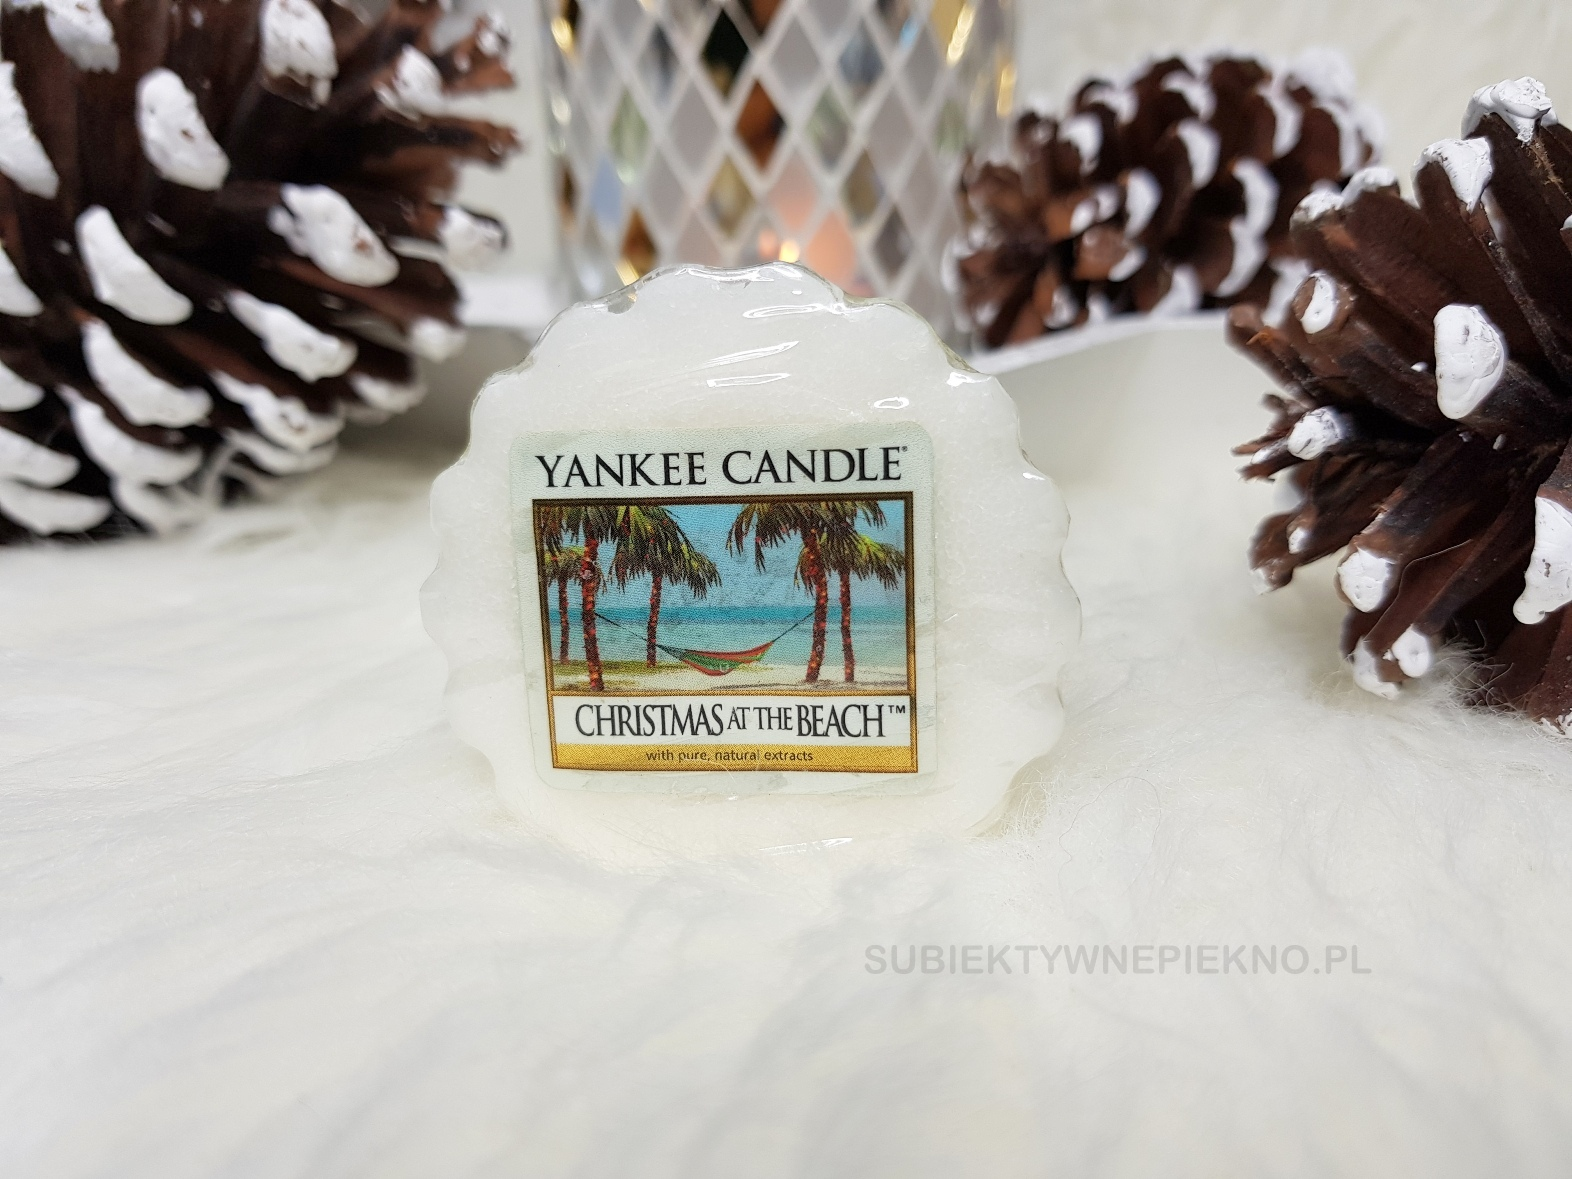 CHRISTMAS AT THE BEACH Yankee Candle